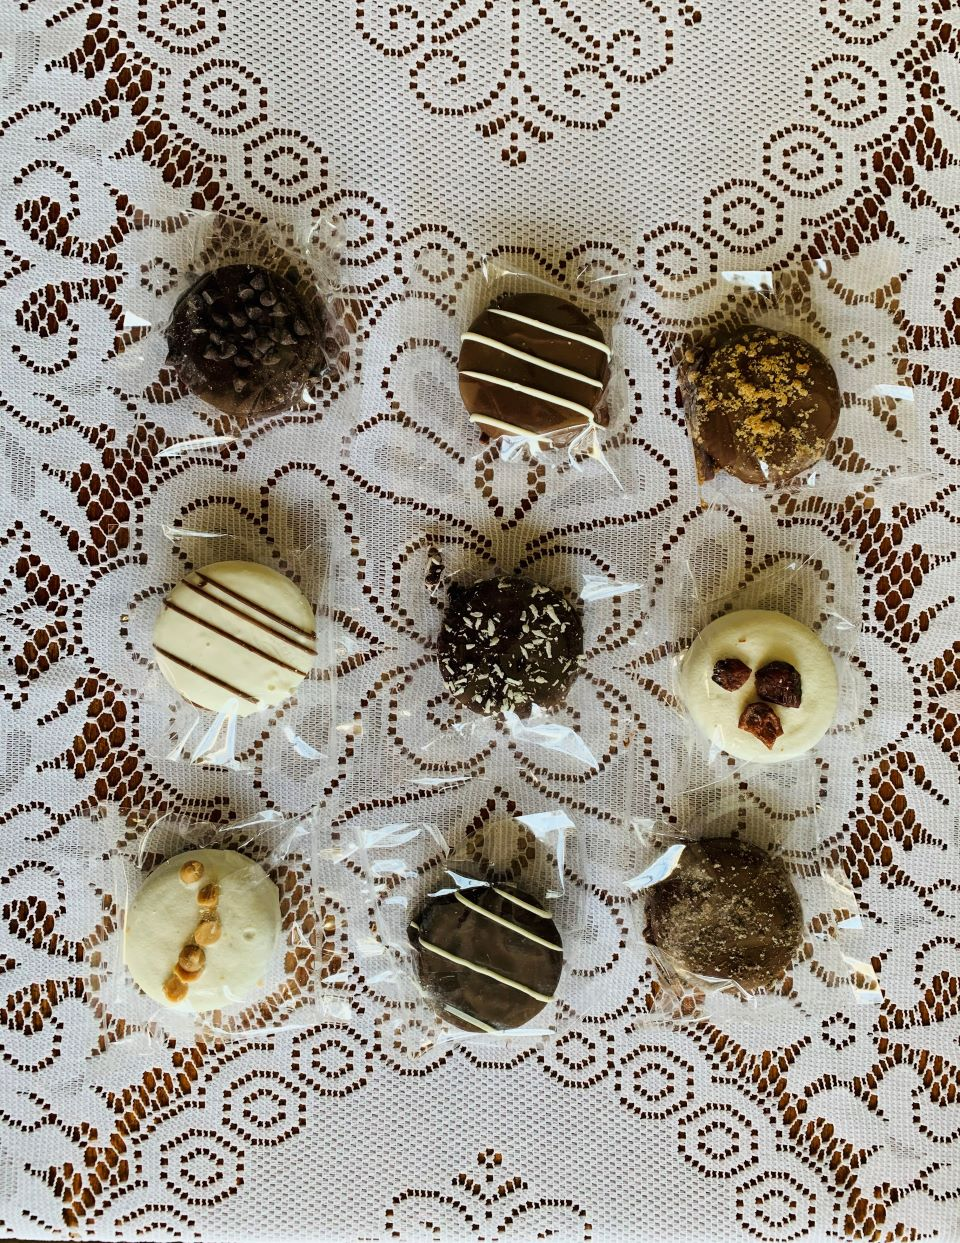 Chocolate covered cookie assortment